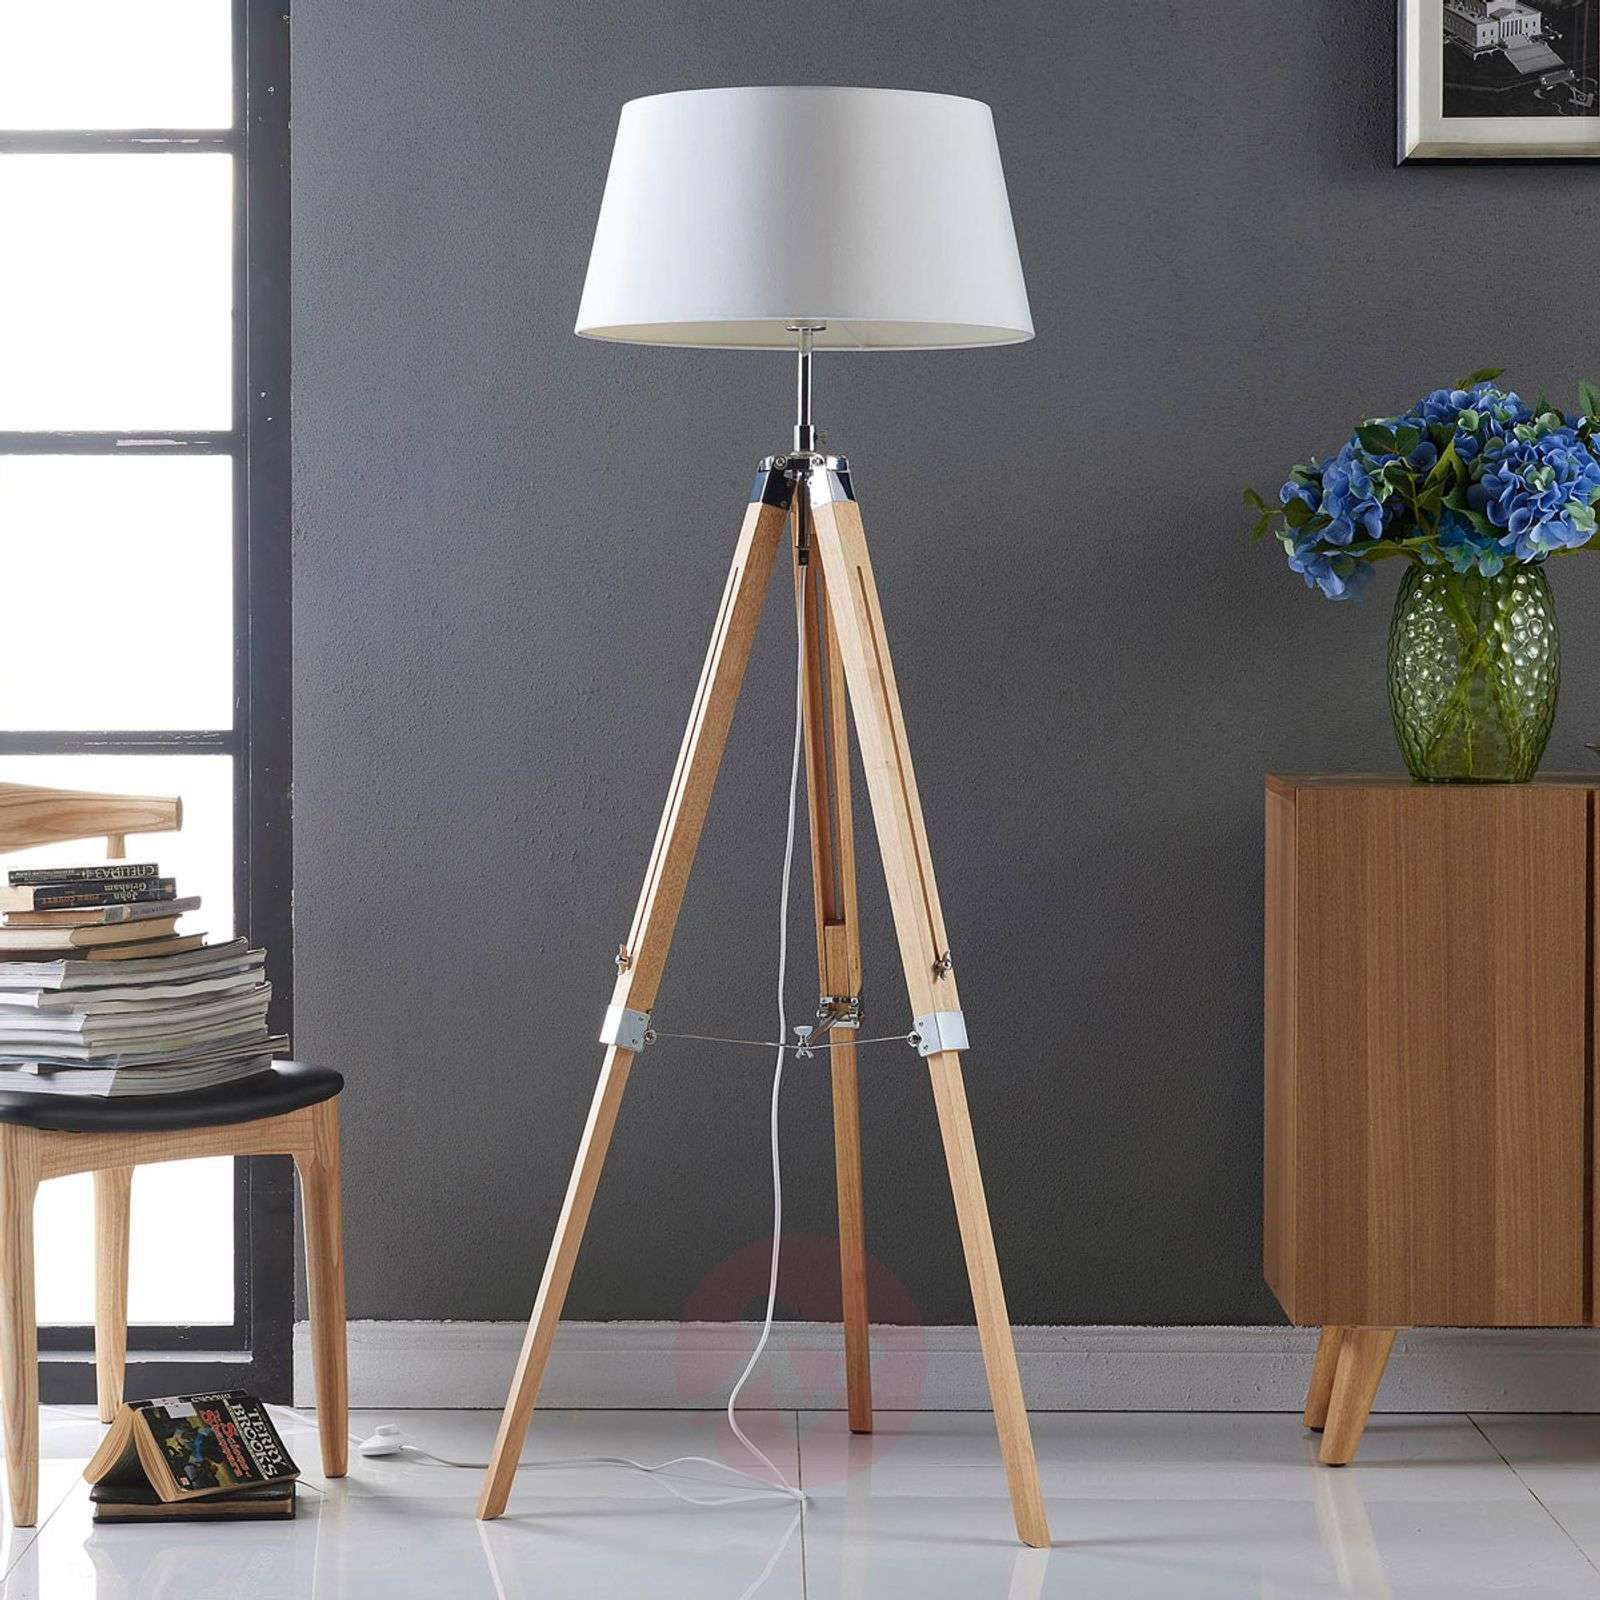 Katie floor lamp with a three-legged wooden stand-9621011-02